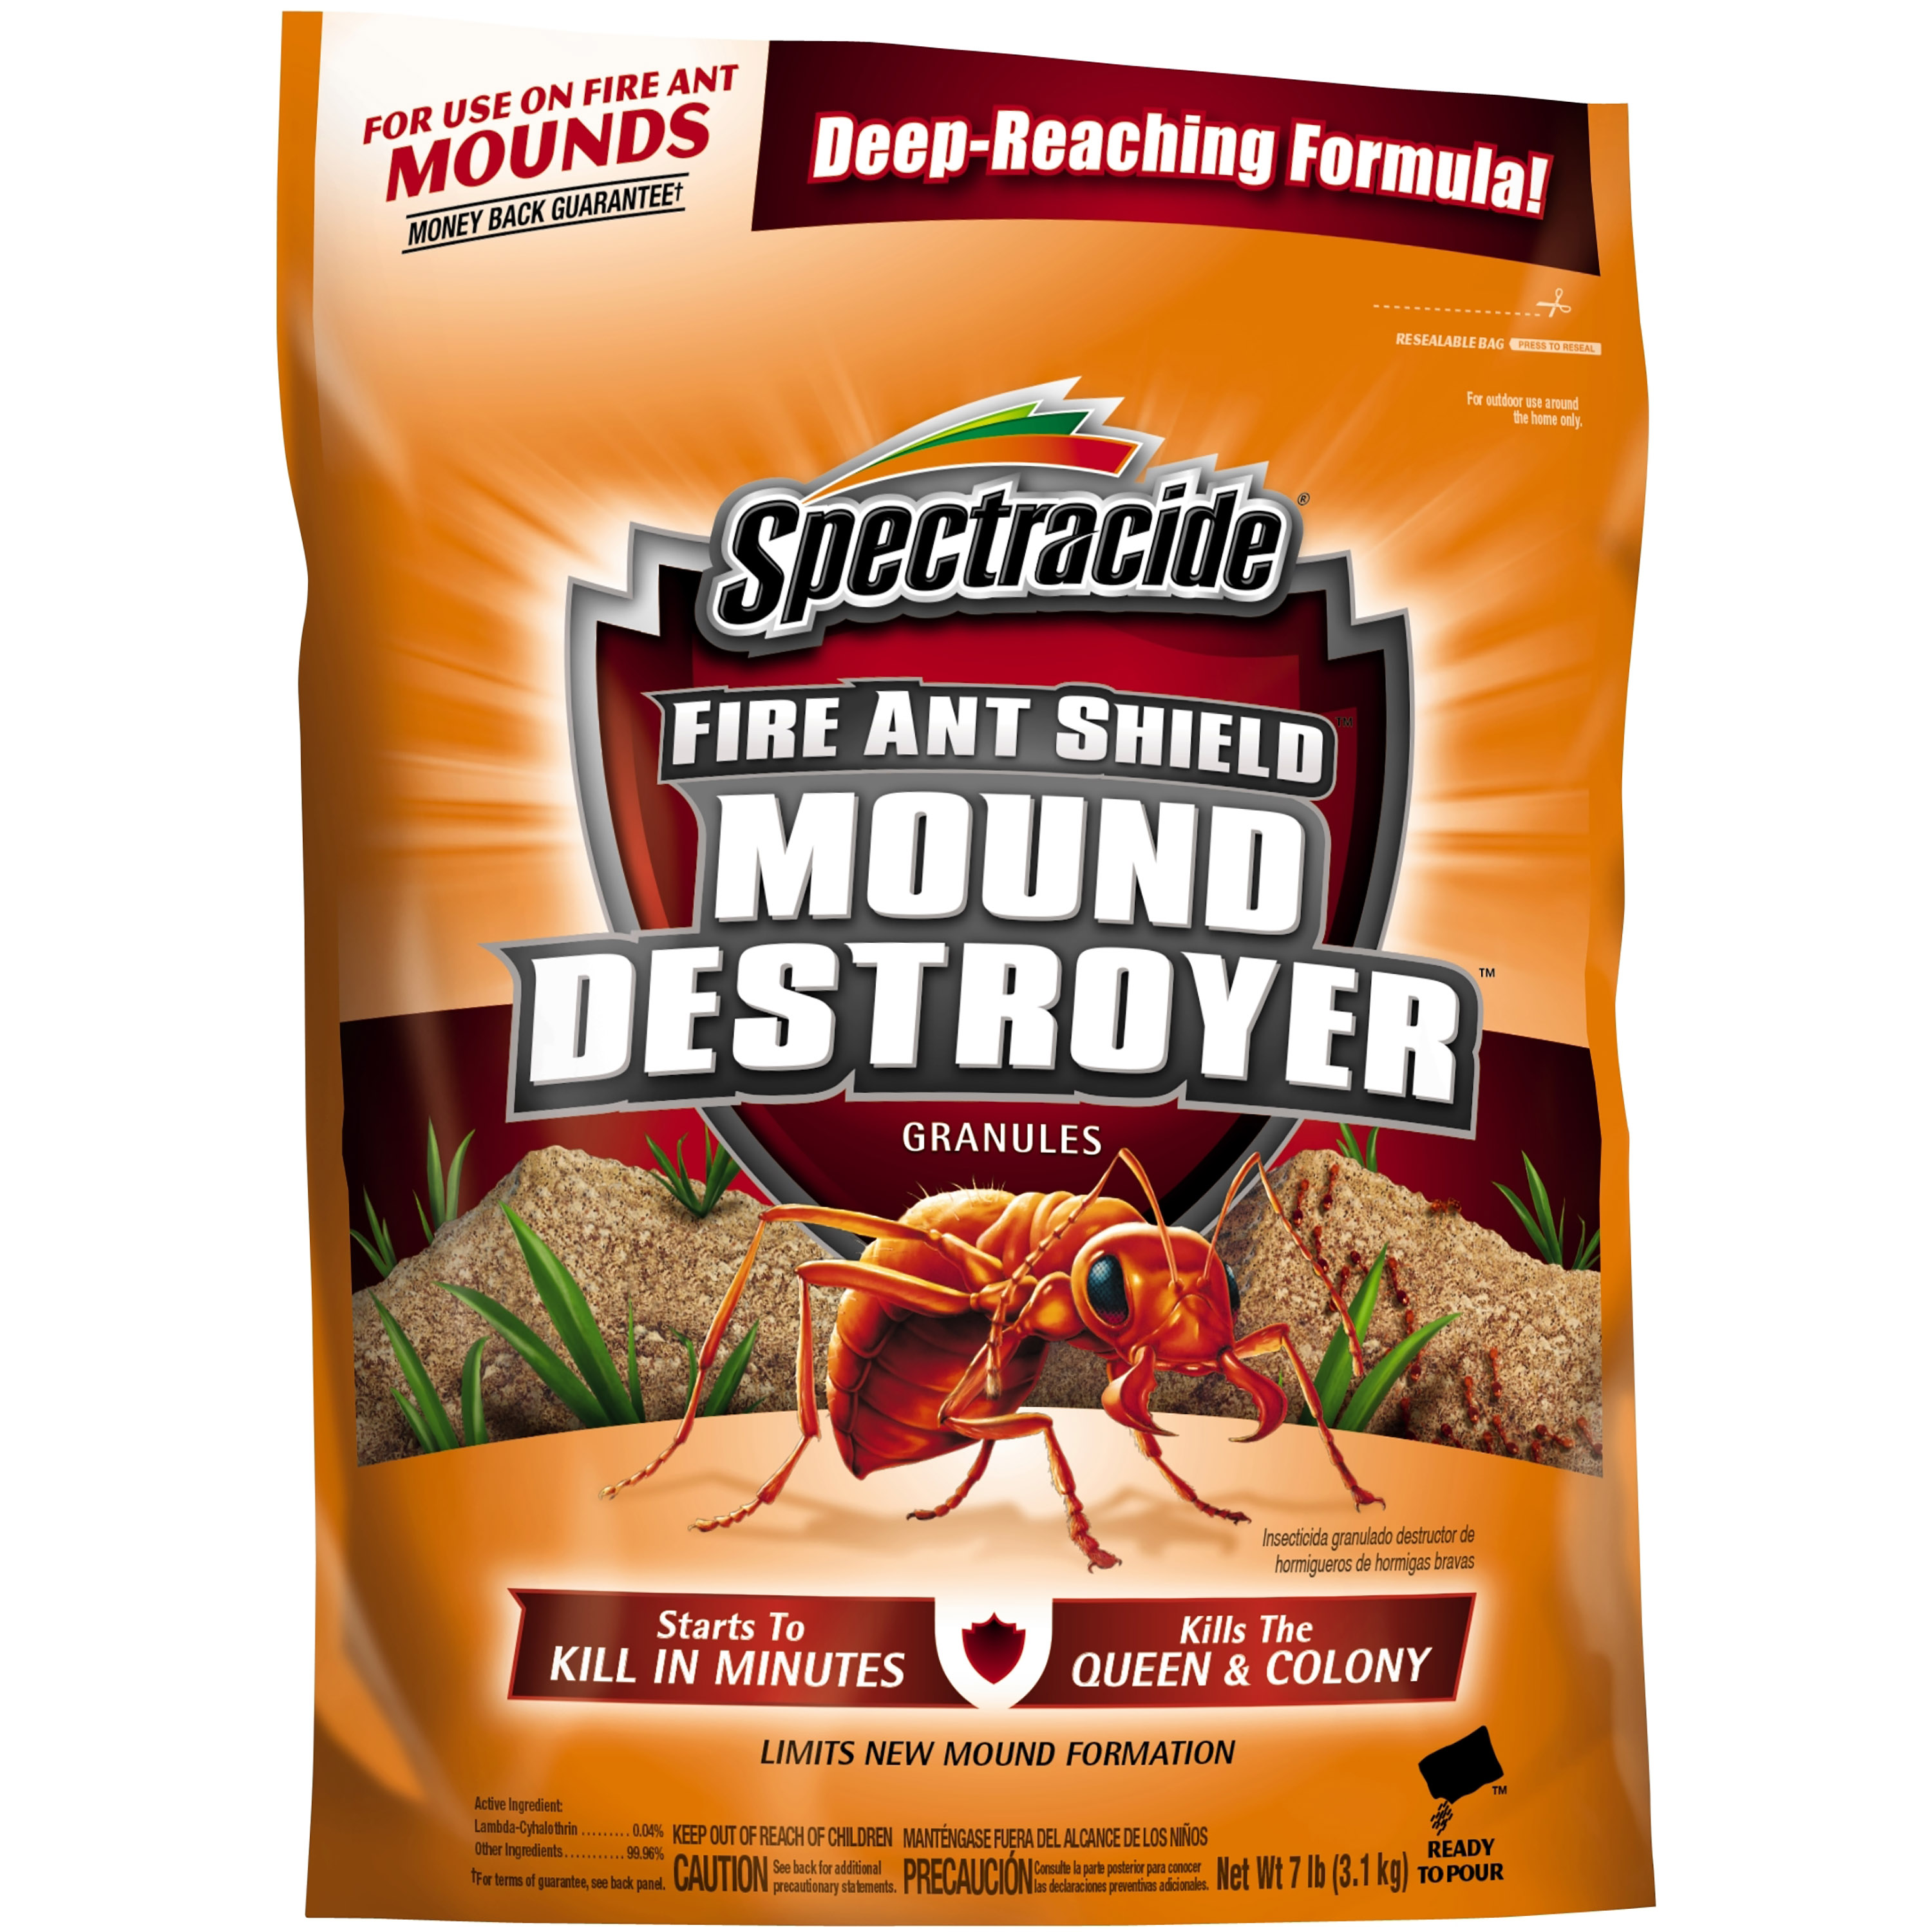 Spectracide Fire Ant Shield Mound Destroyer Granules, 7-lb